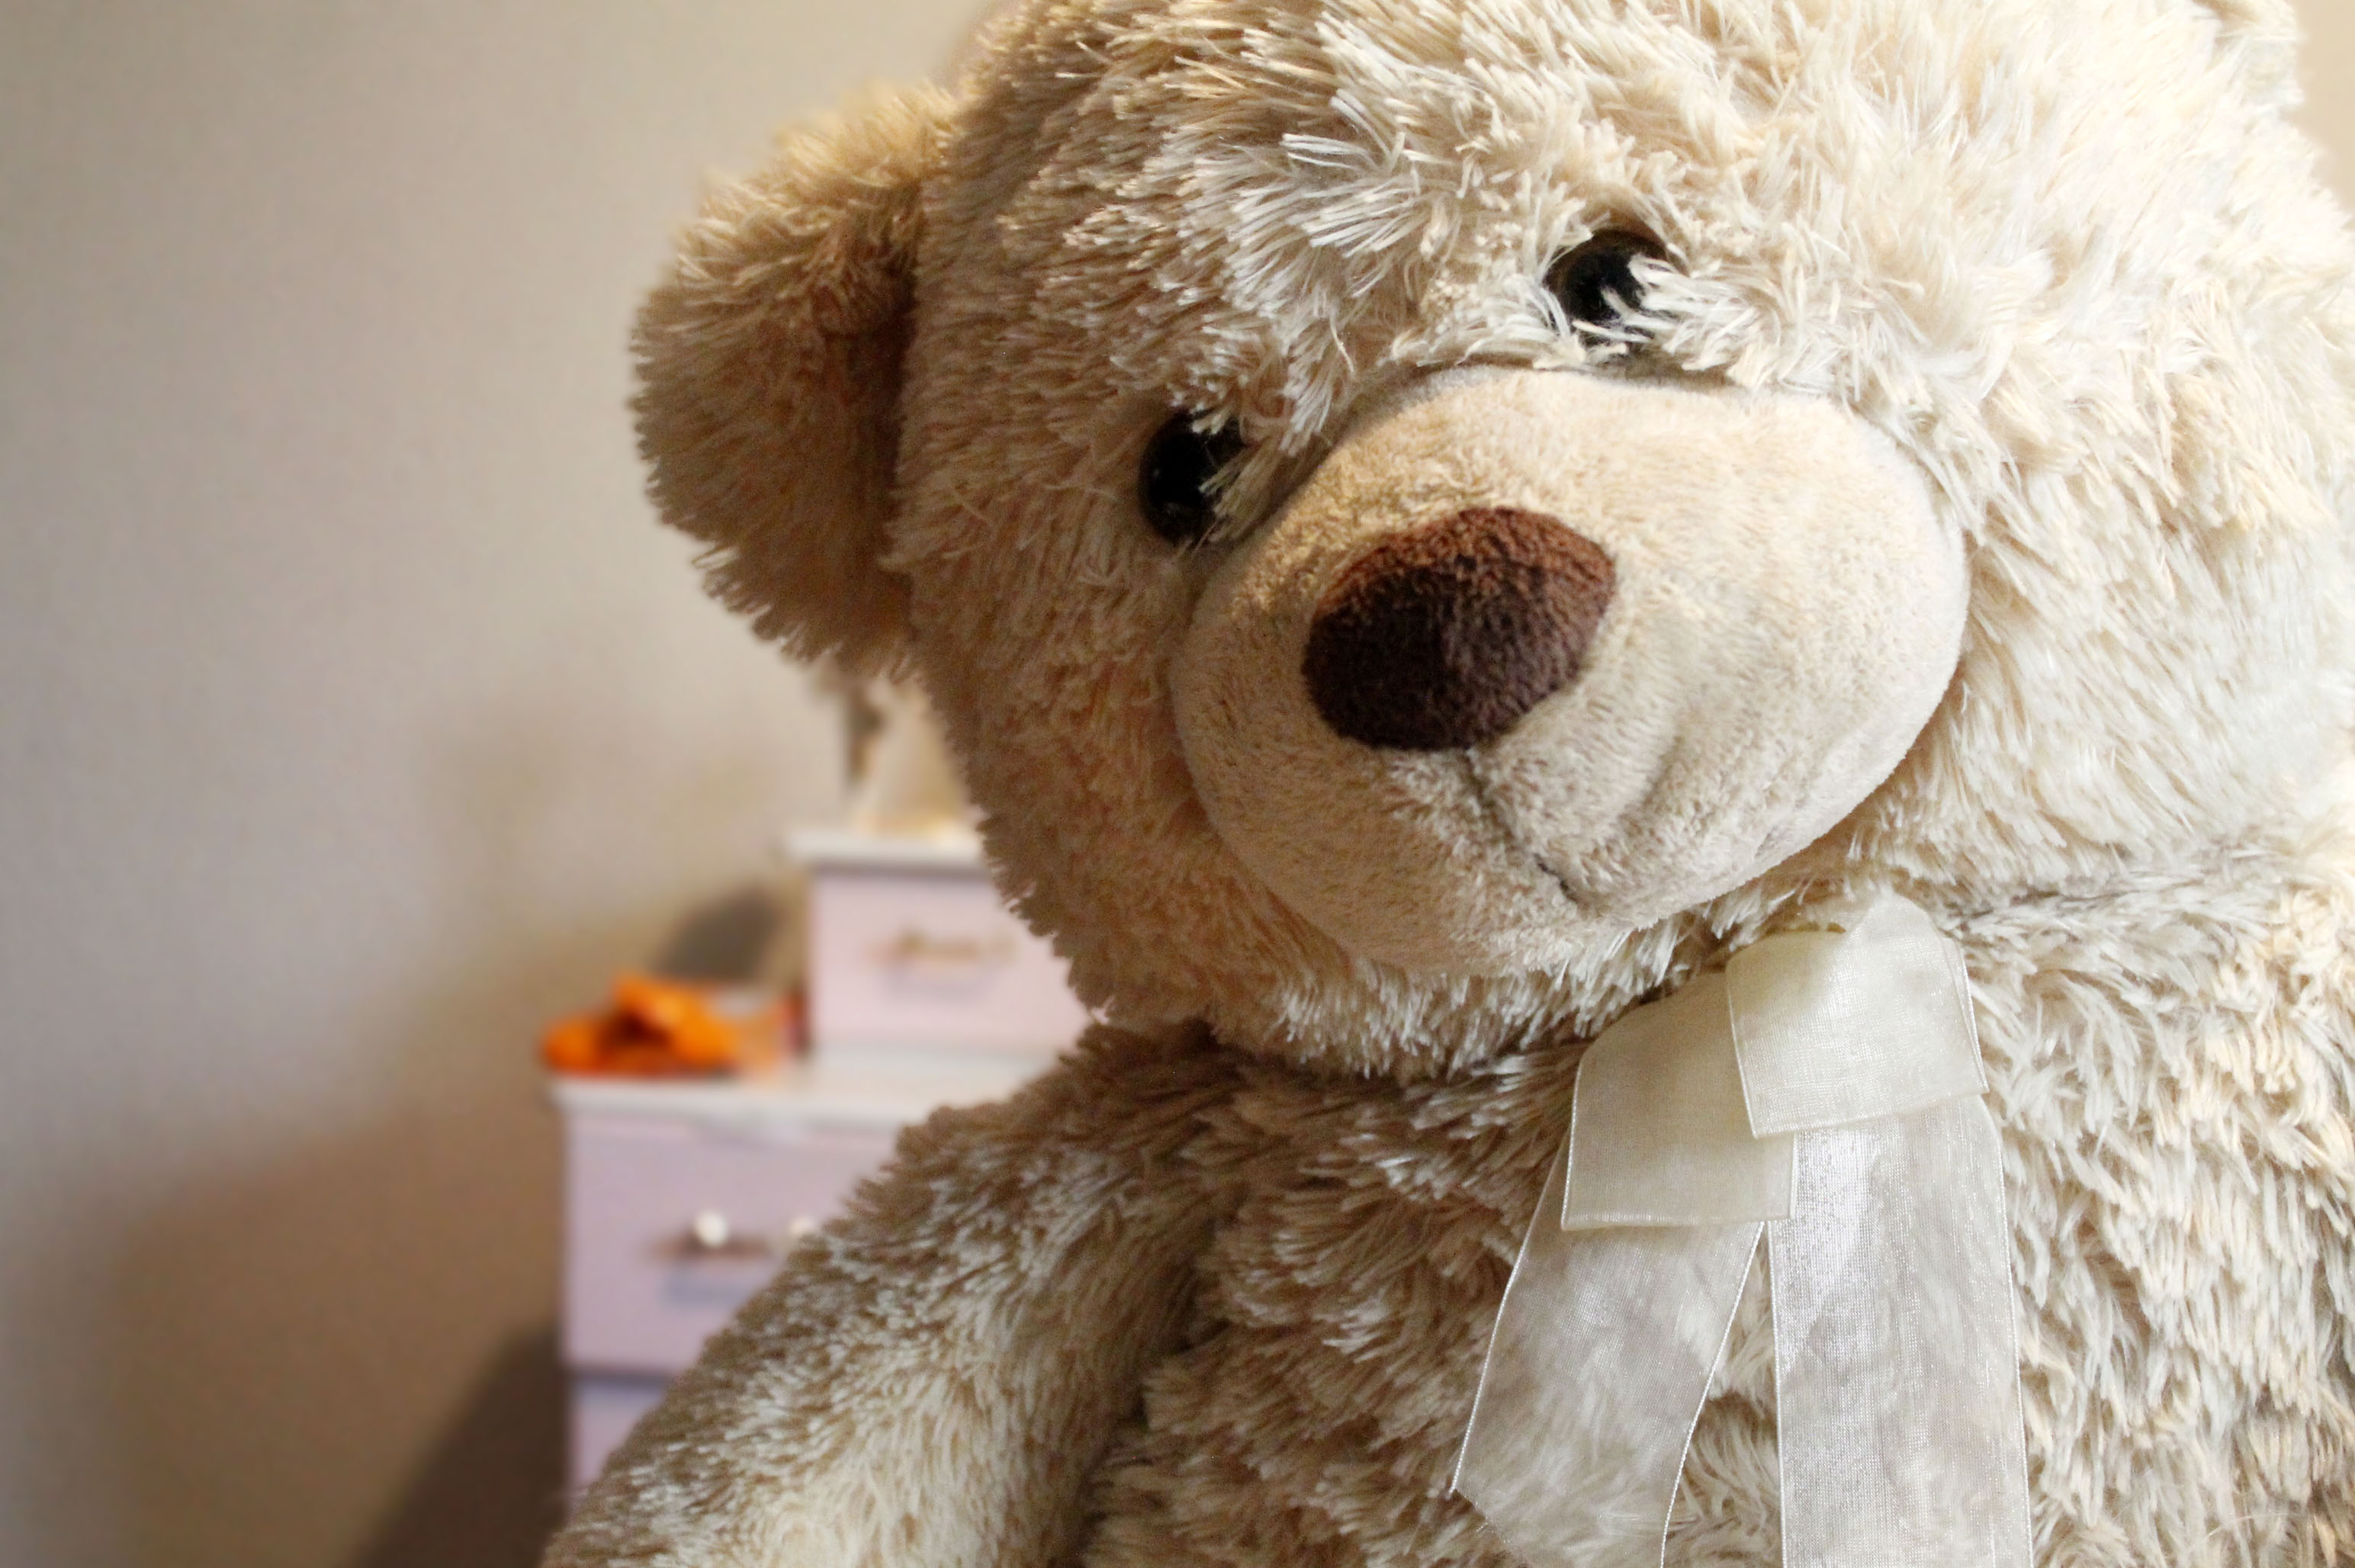 Free stock photo of teddy bear, toy